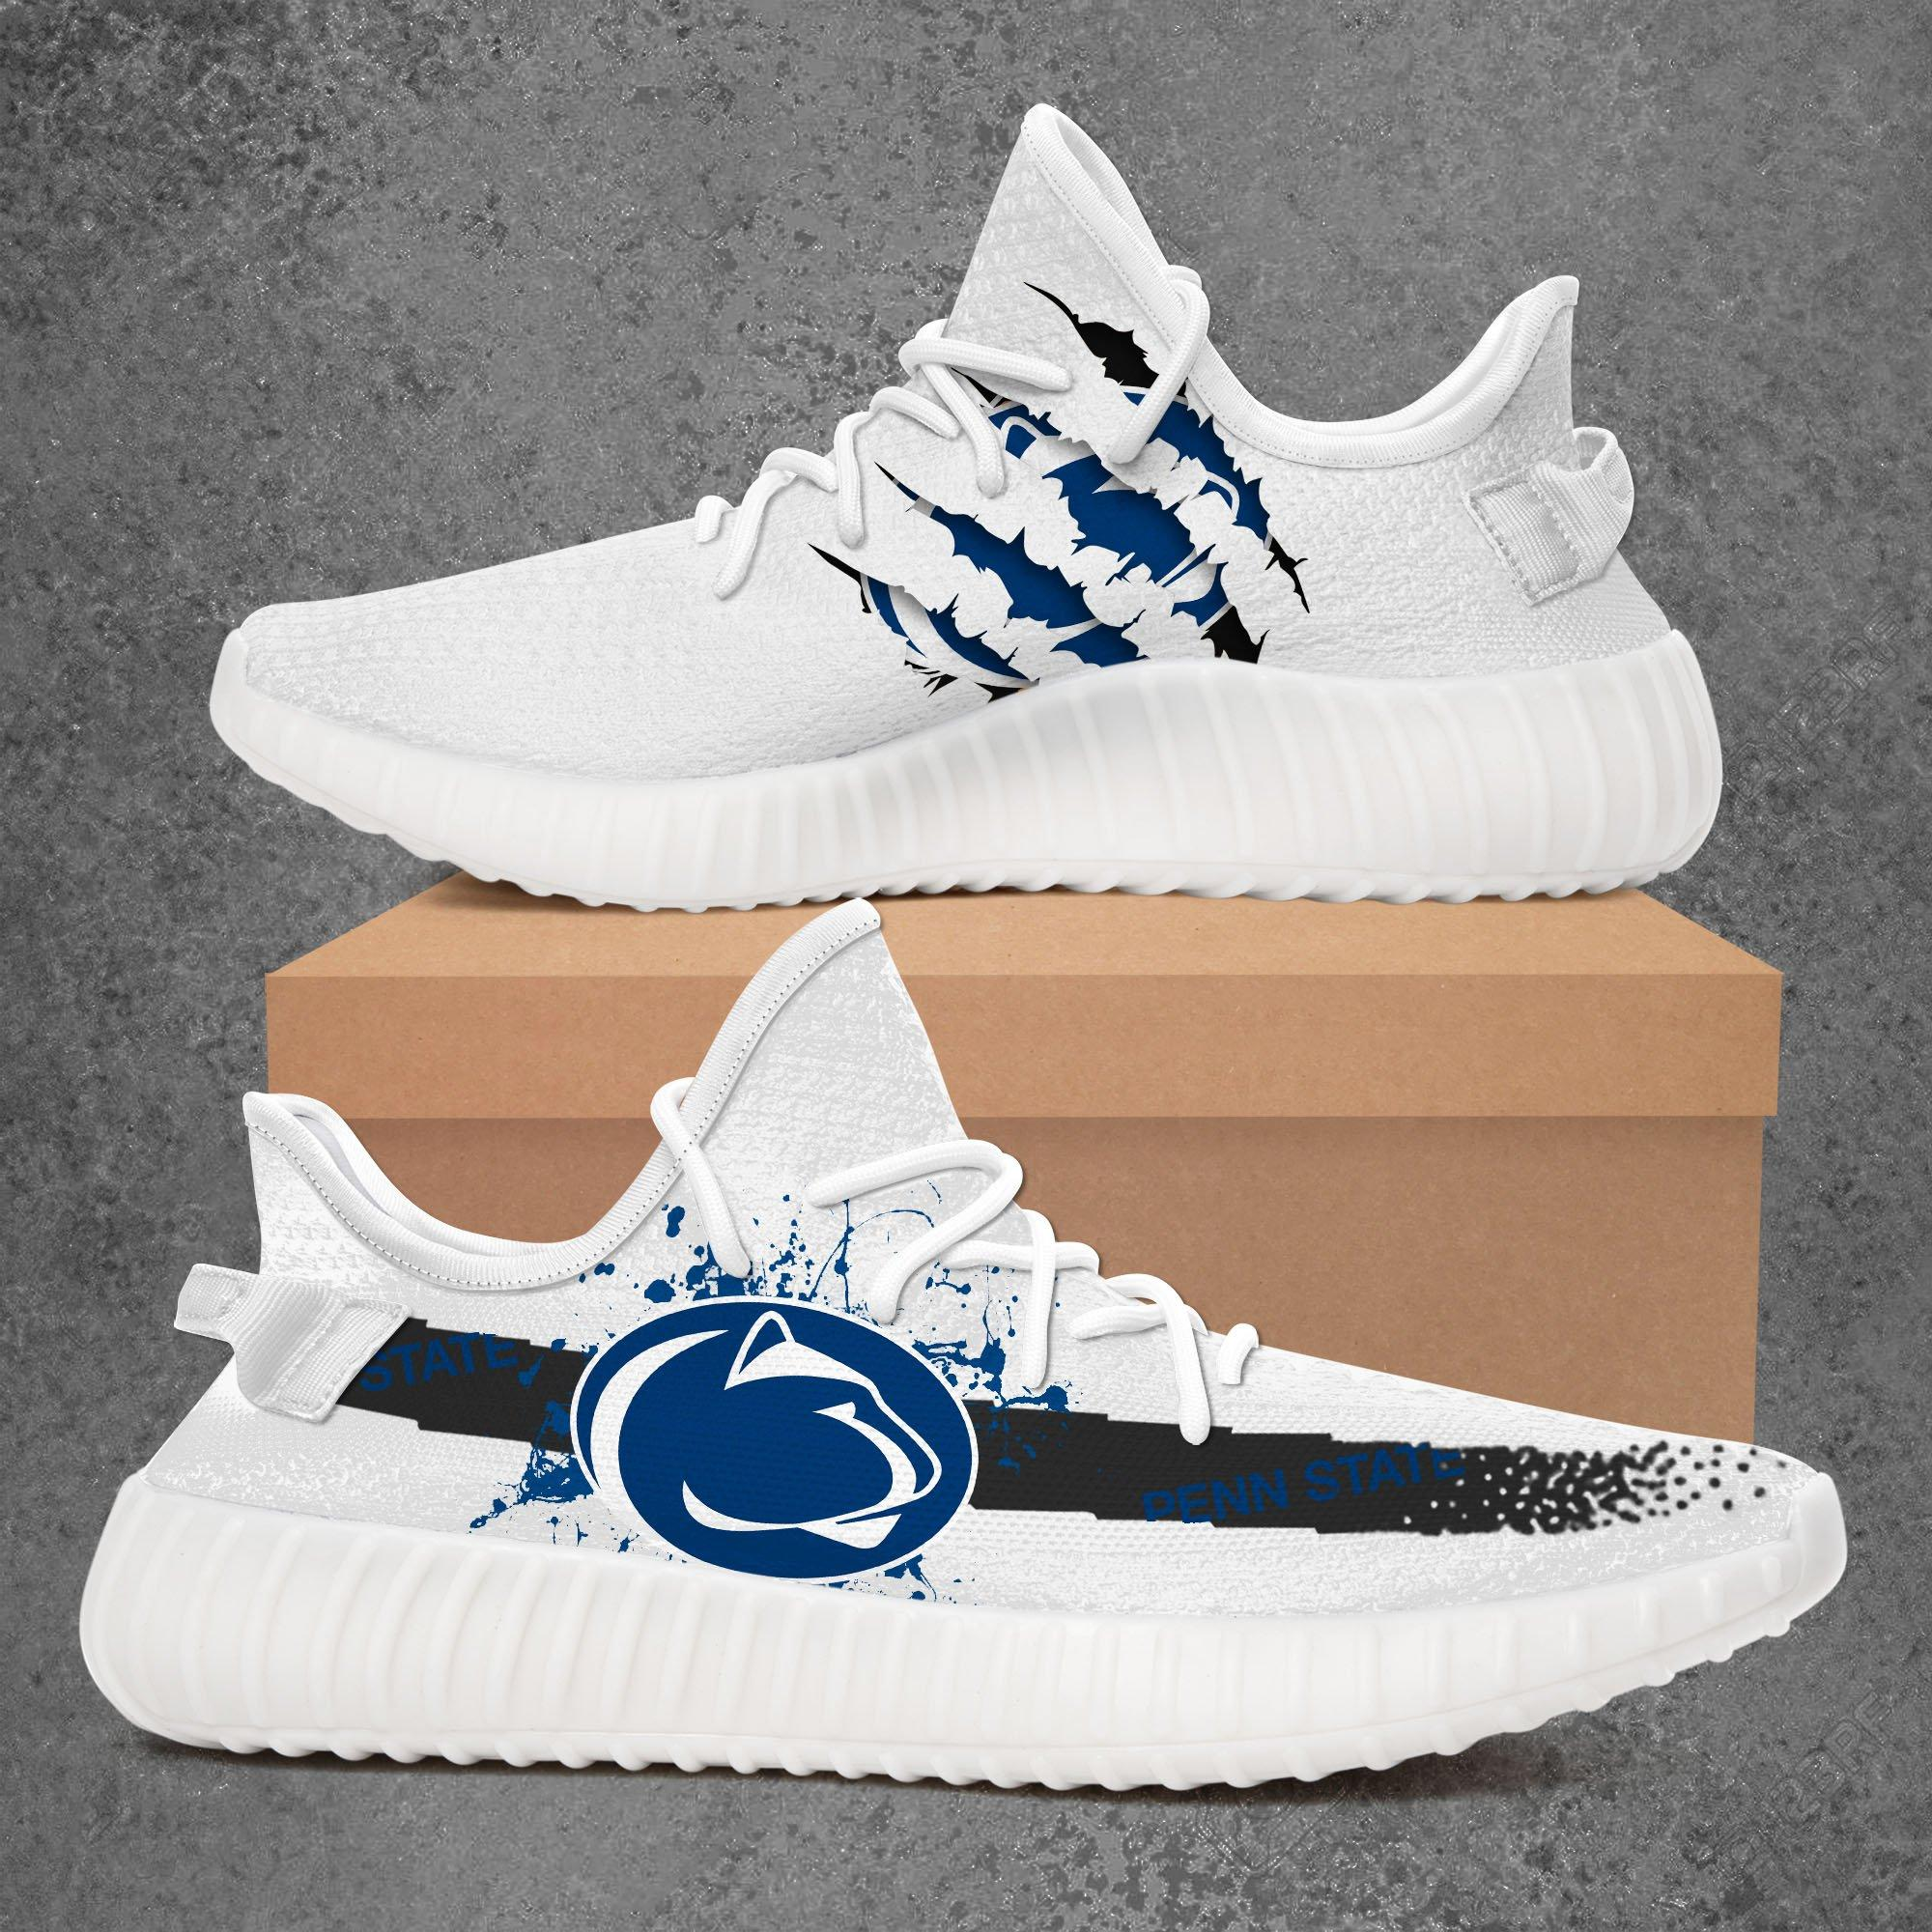 Penn State Nittany Lions Yeezy Boost